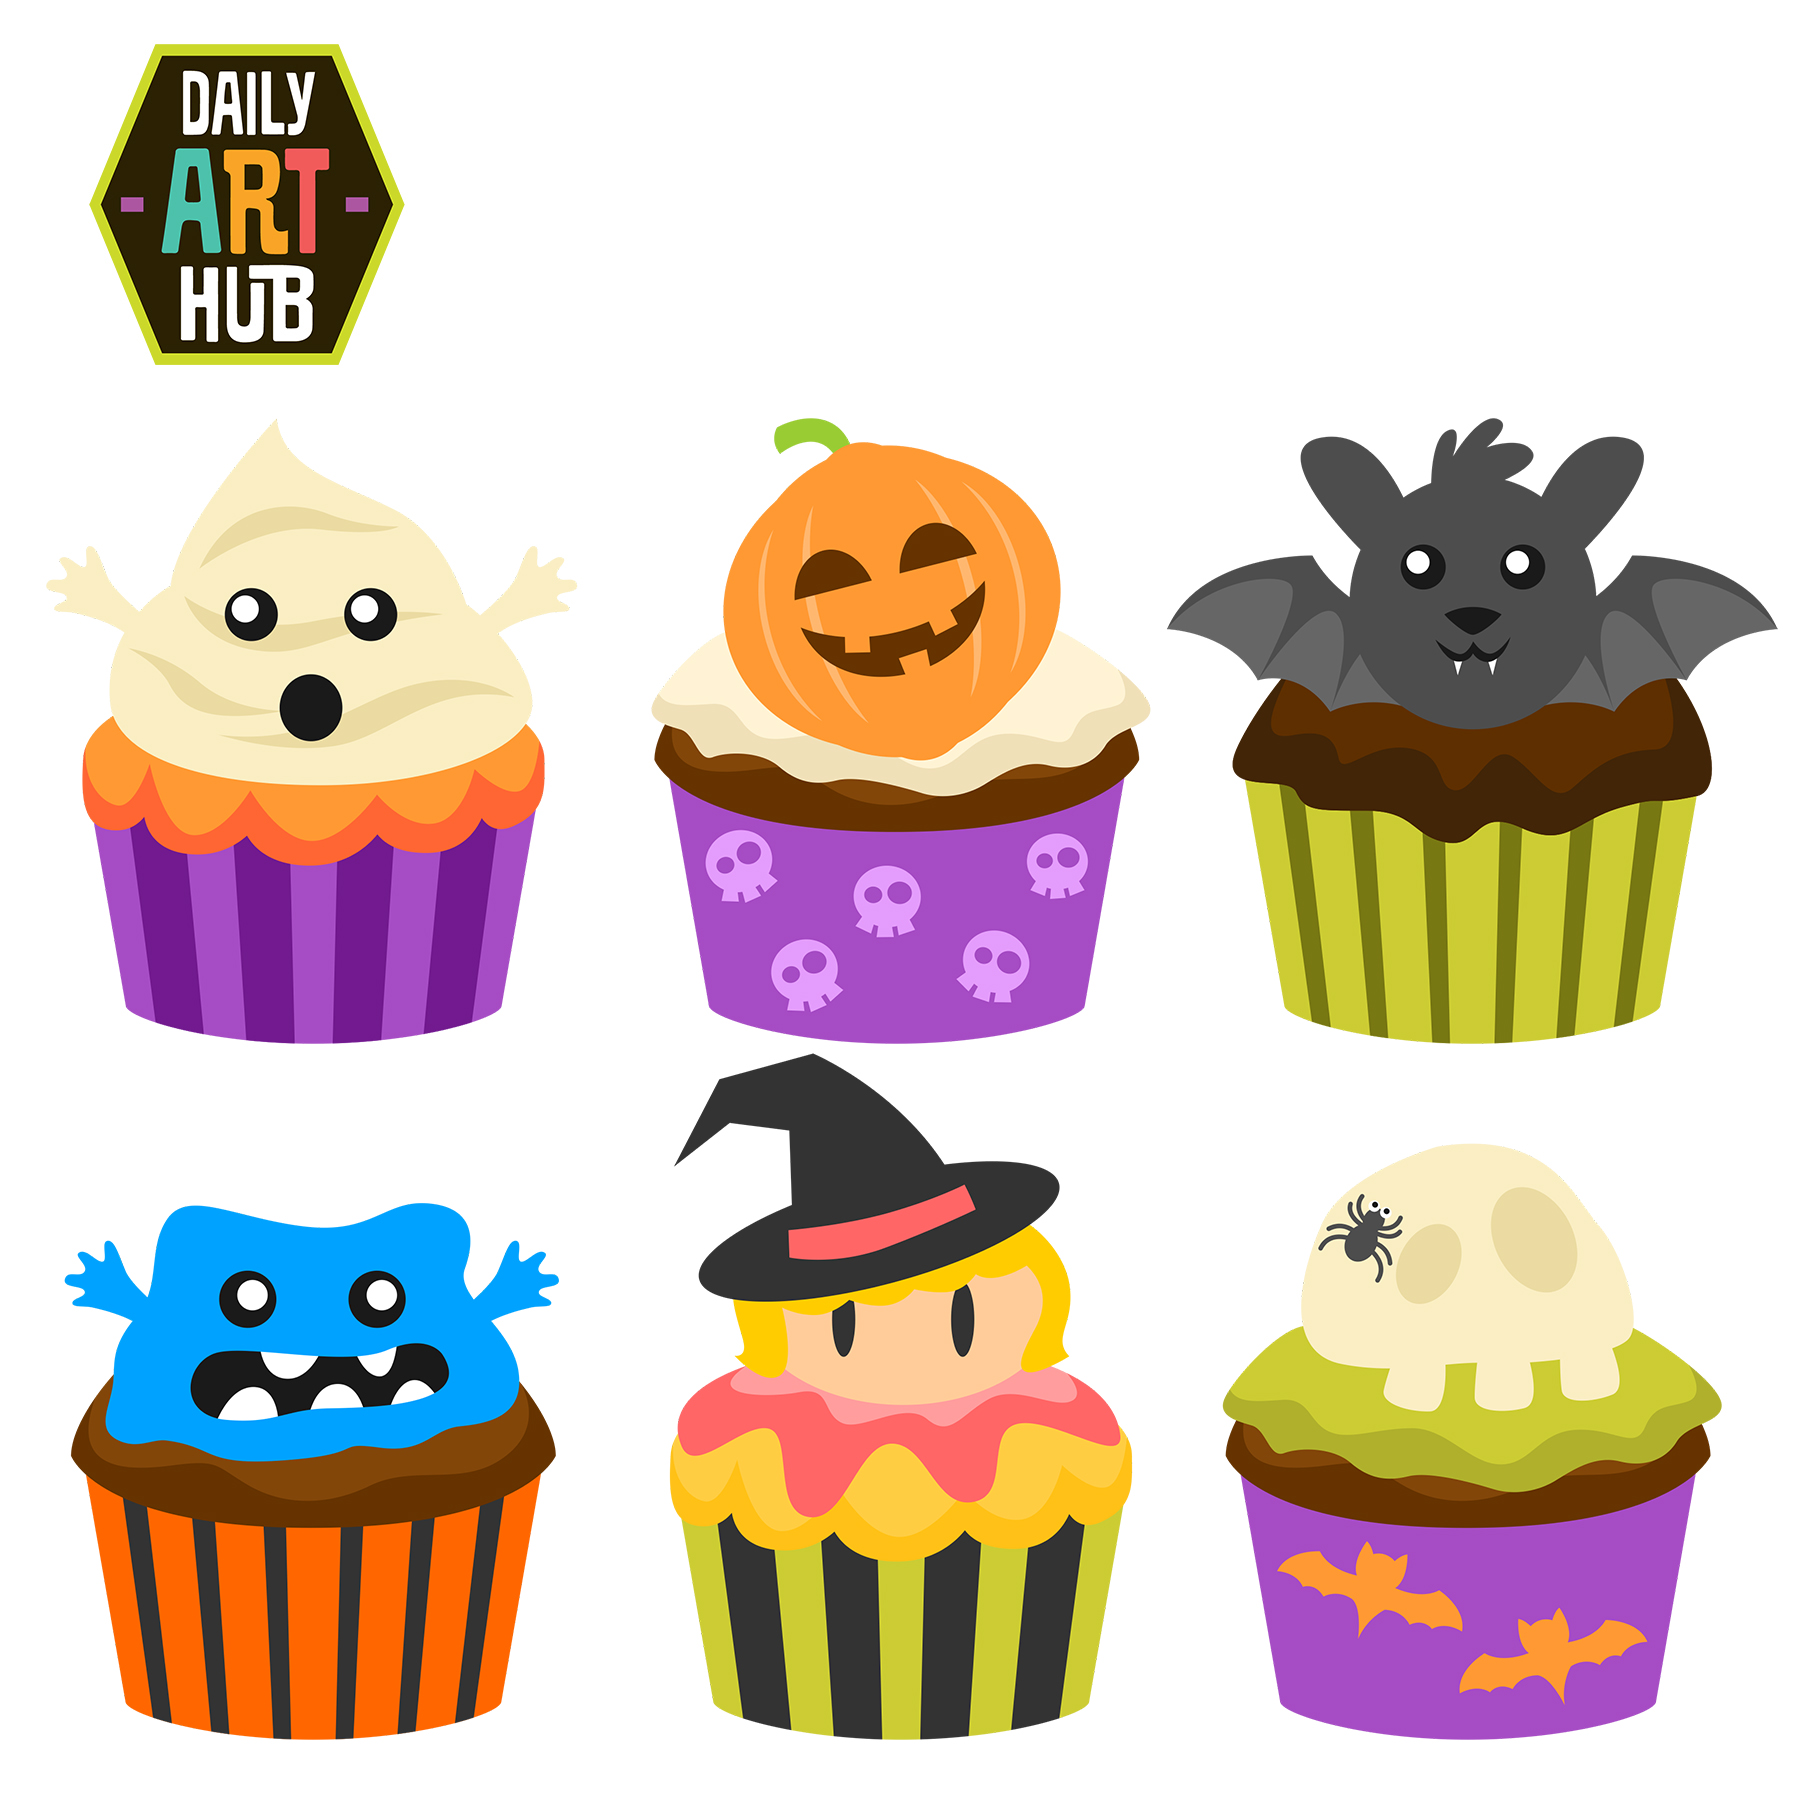 Halloween birthday cake clipart picture transparent library Halloween Birthday Cake Clipart - Clipart Kid picture transparent library